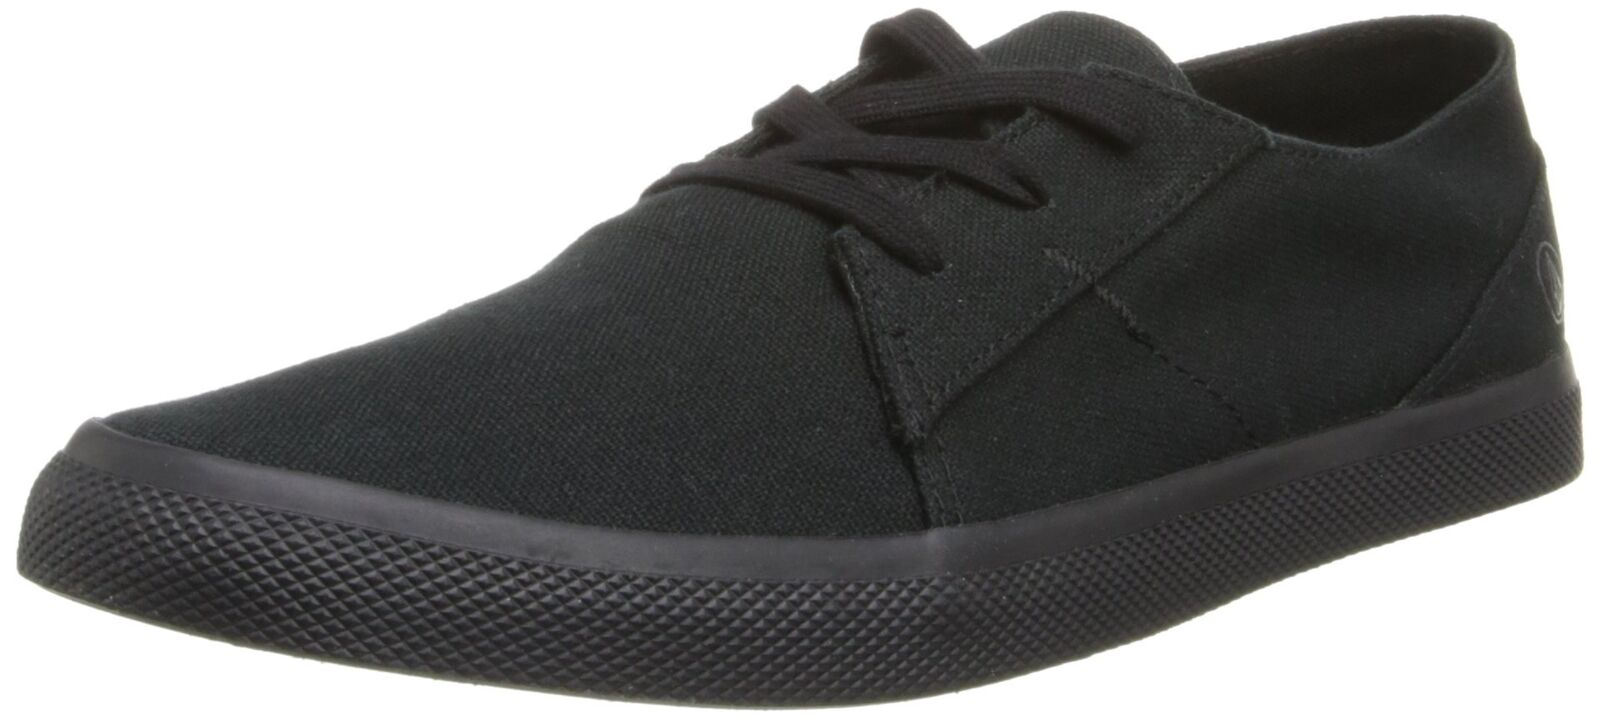 Volcom Men's Lo Fi Low Top Sneaker Black on Black 6 D(M) US